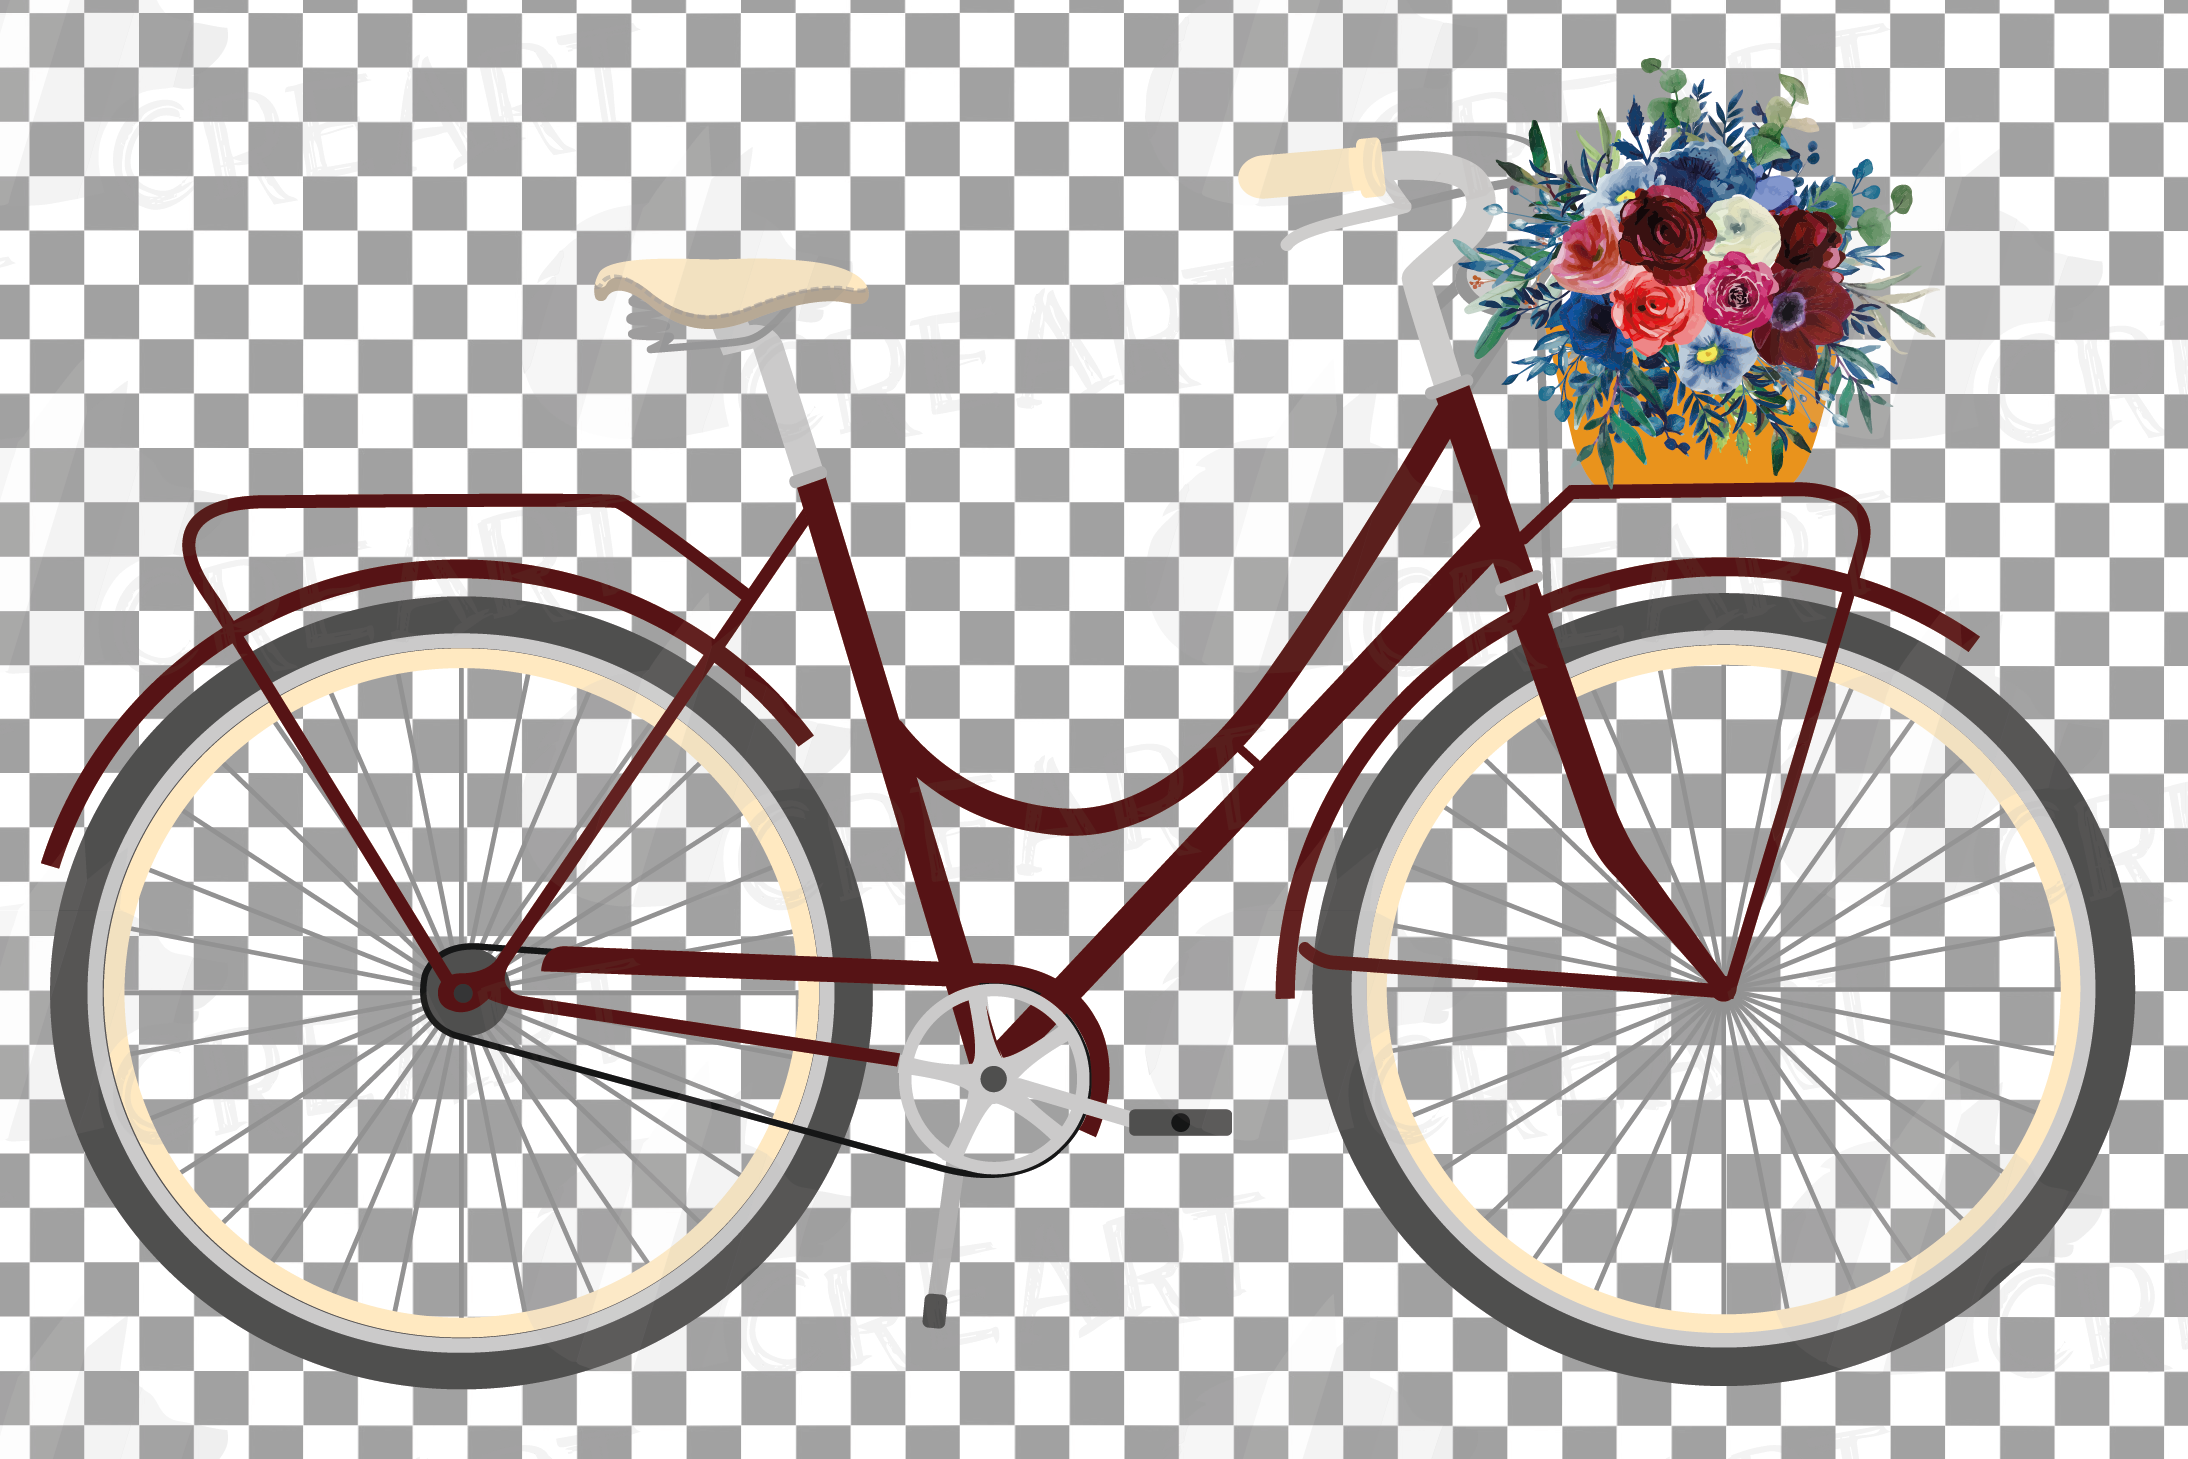 Floral bicycles with watercolor bouquets decoration clip art example image 8